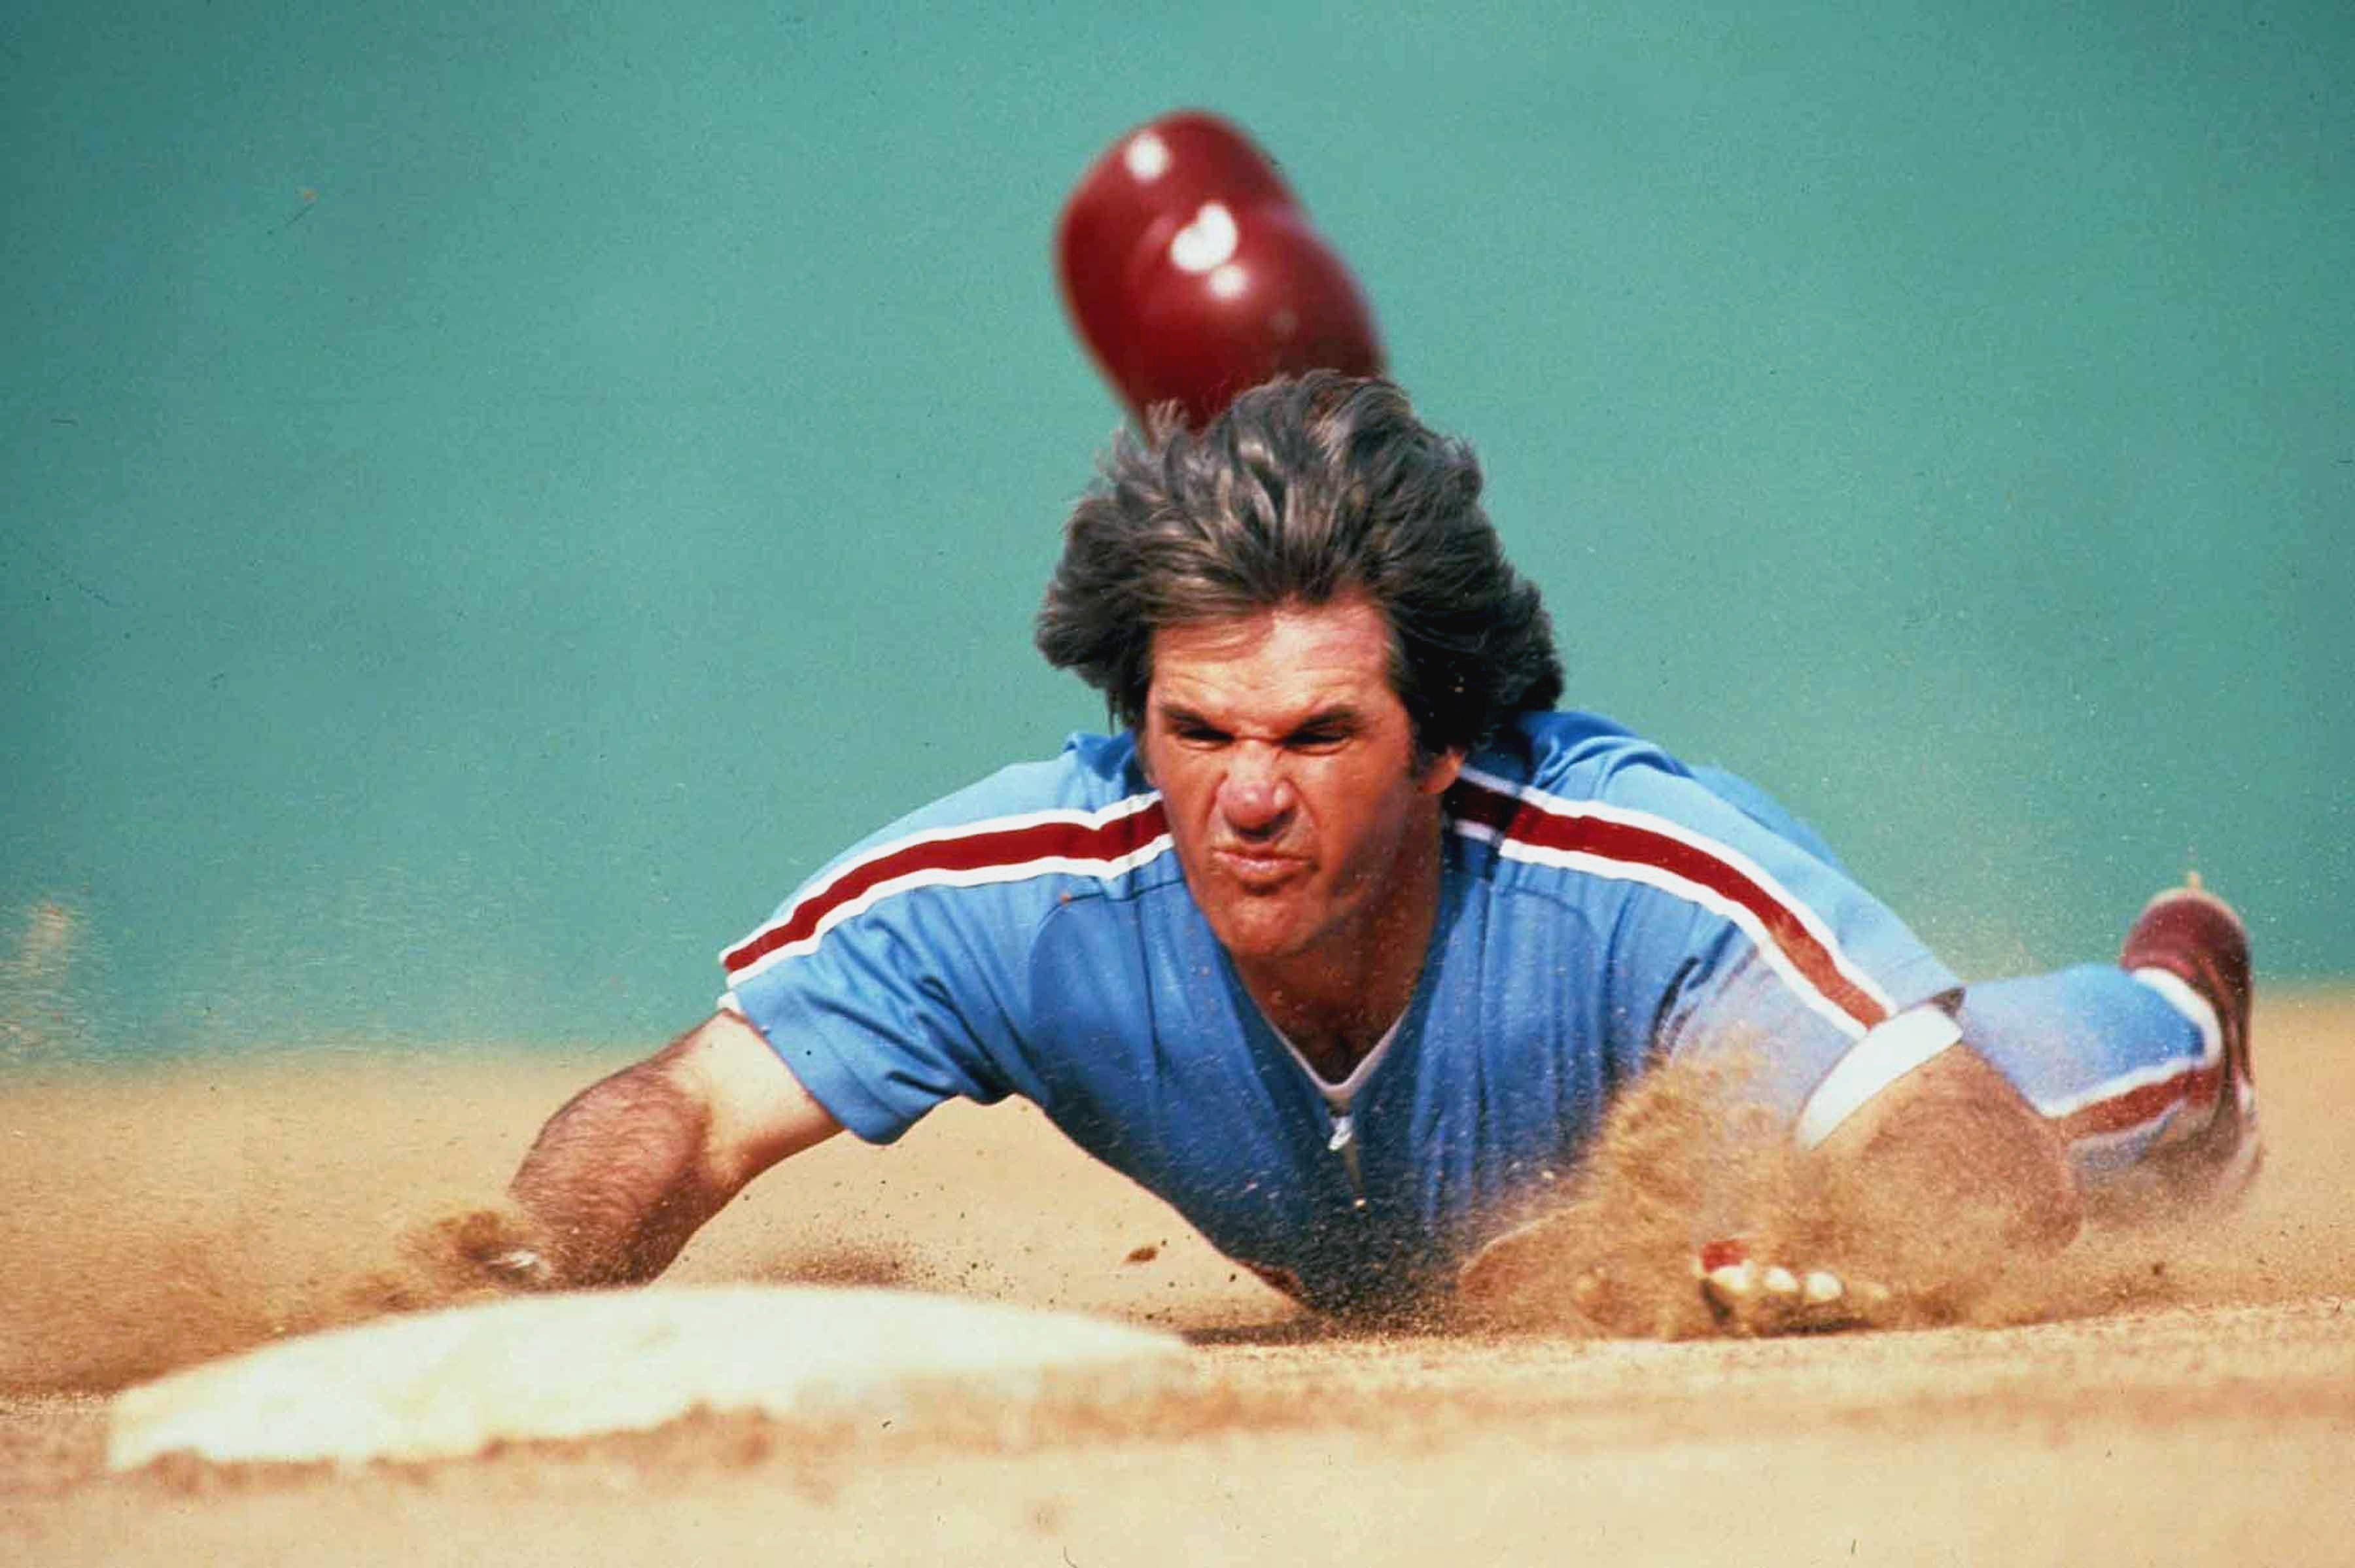 a biography of peter edward rose an american baseball player Learn more about pete rose, the baseball great who earned a lifetime ban for gambling on the sport, at biographycom american baseball star pete rose established a.